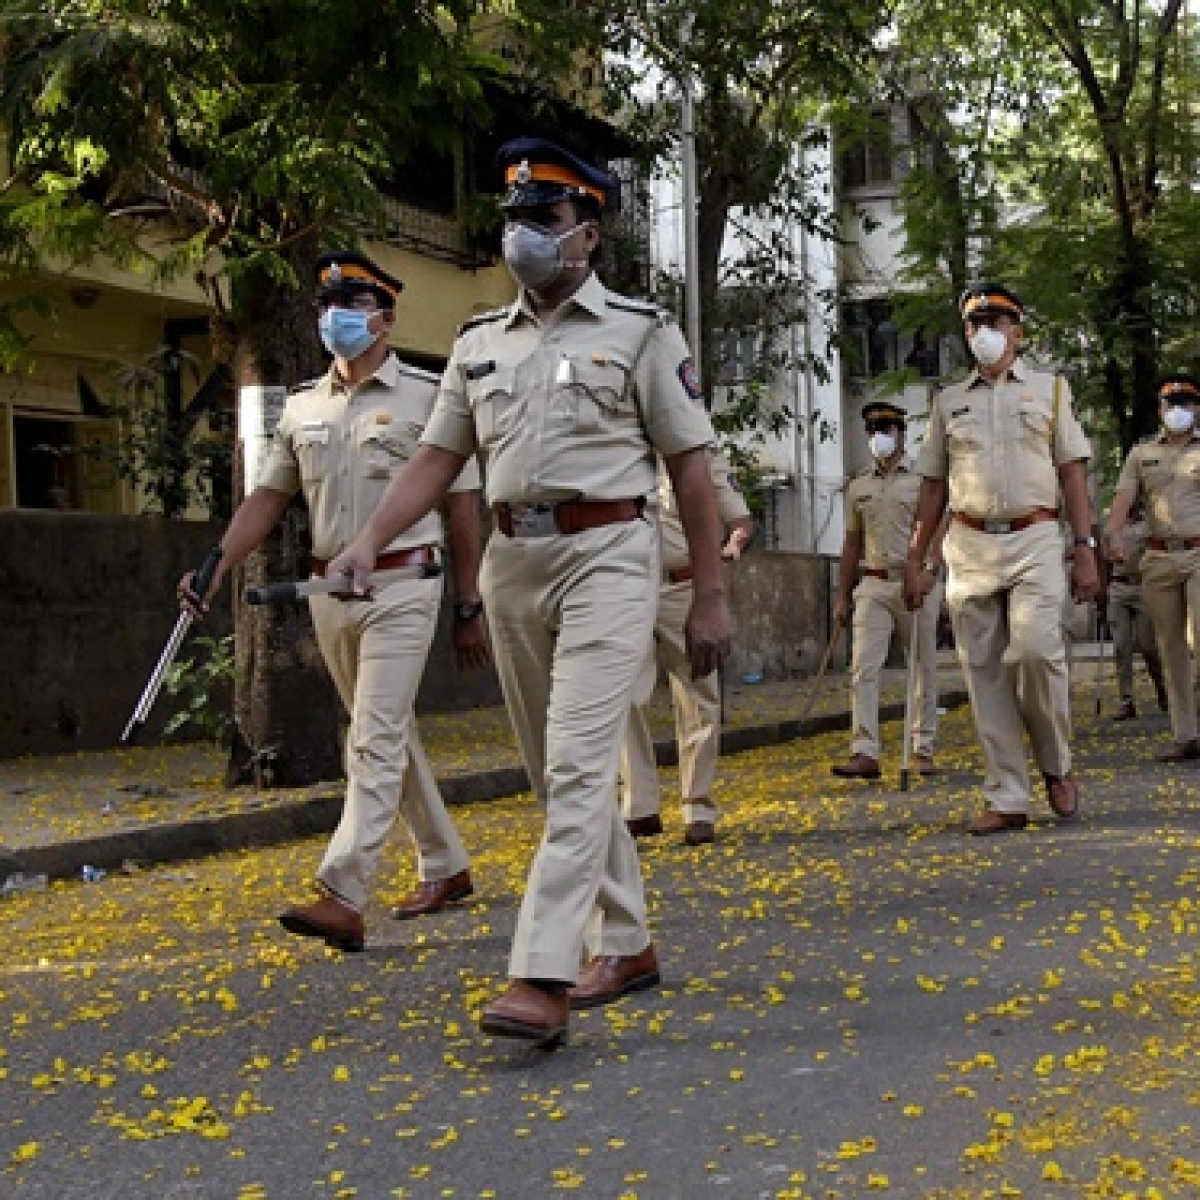 Maharashtra govt transfers 86 police personnel, including 65 Mumbai crime branch officers